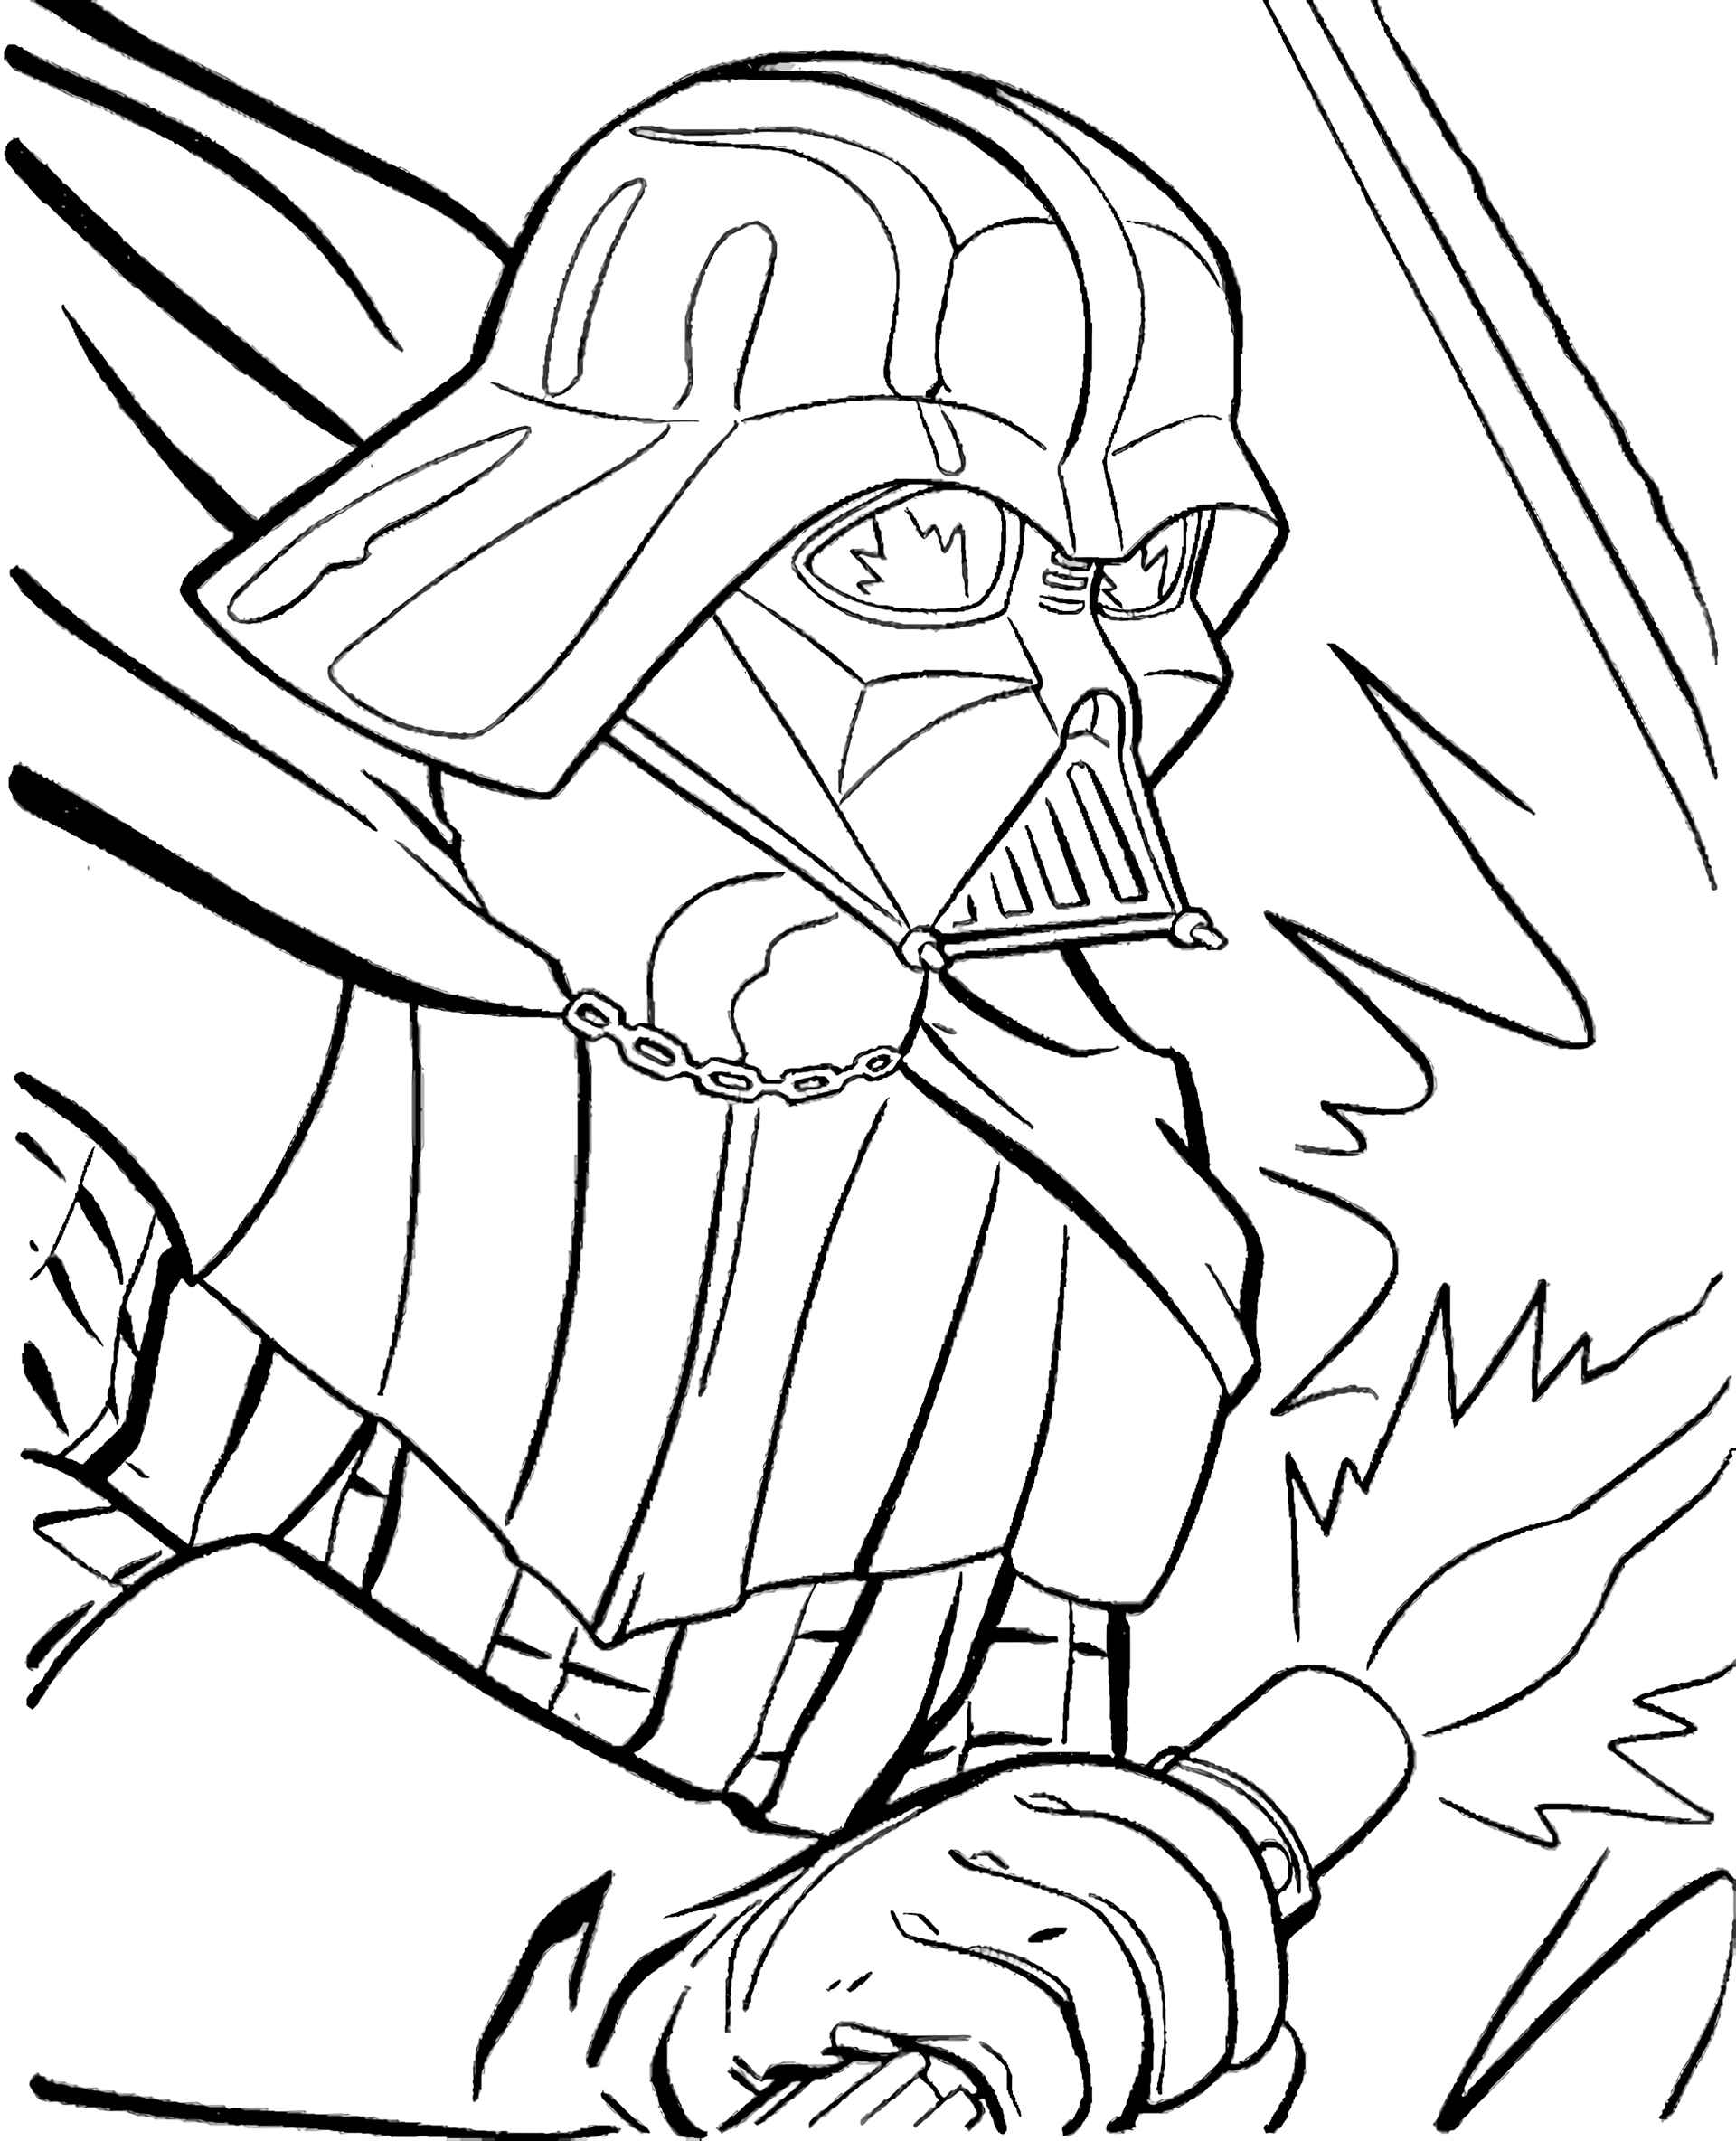 Lord Darth Vader From Star Wars Fights Coloring Page